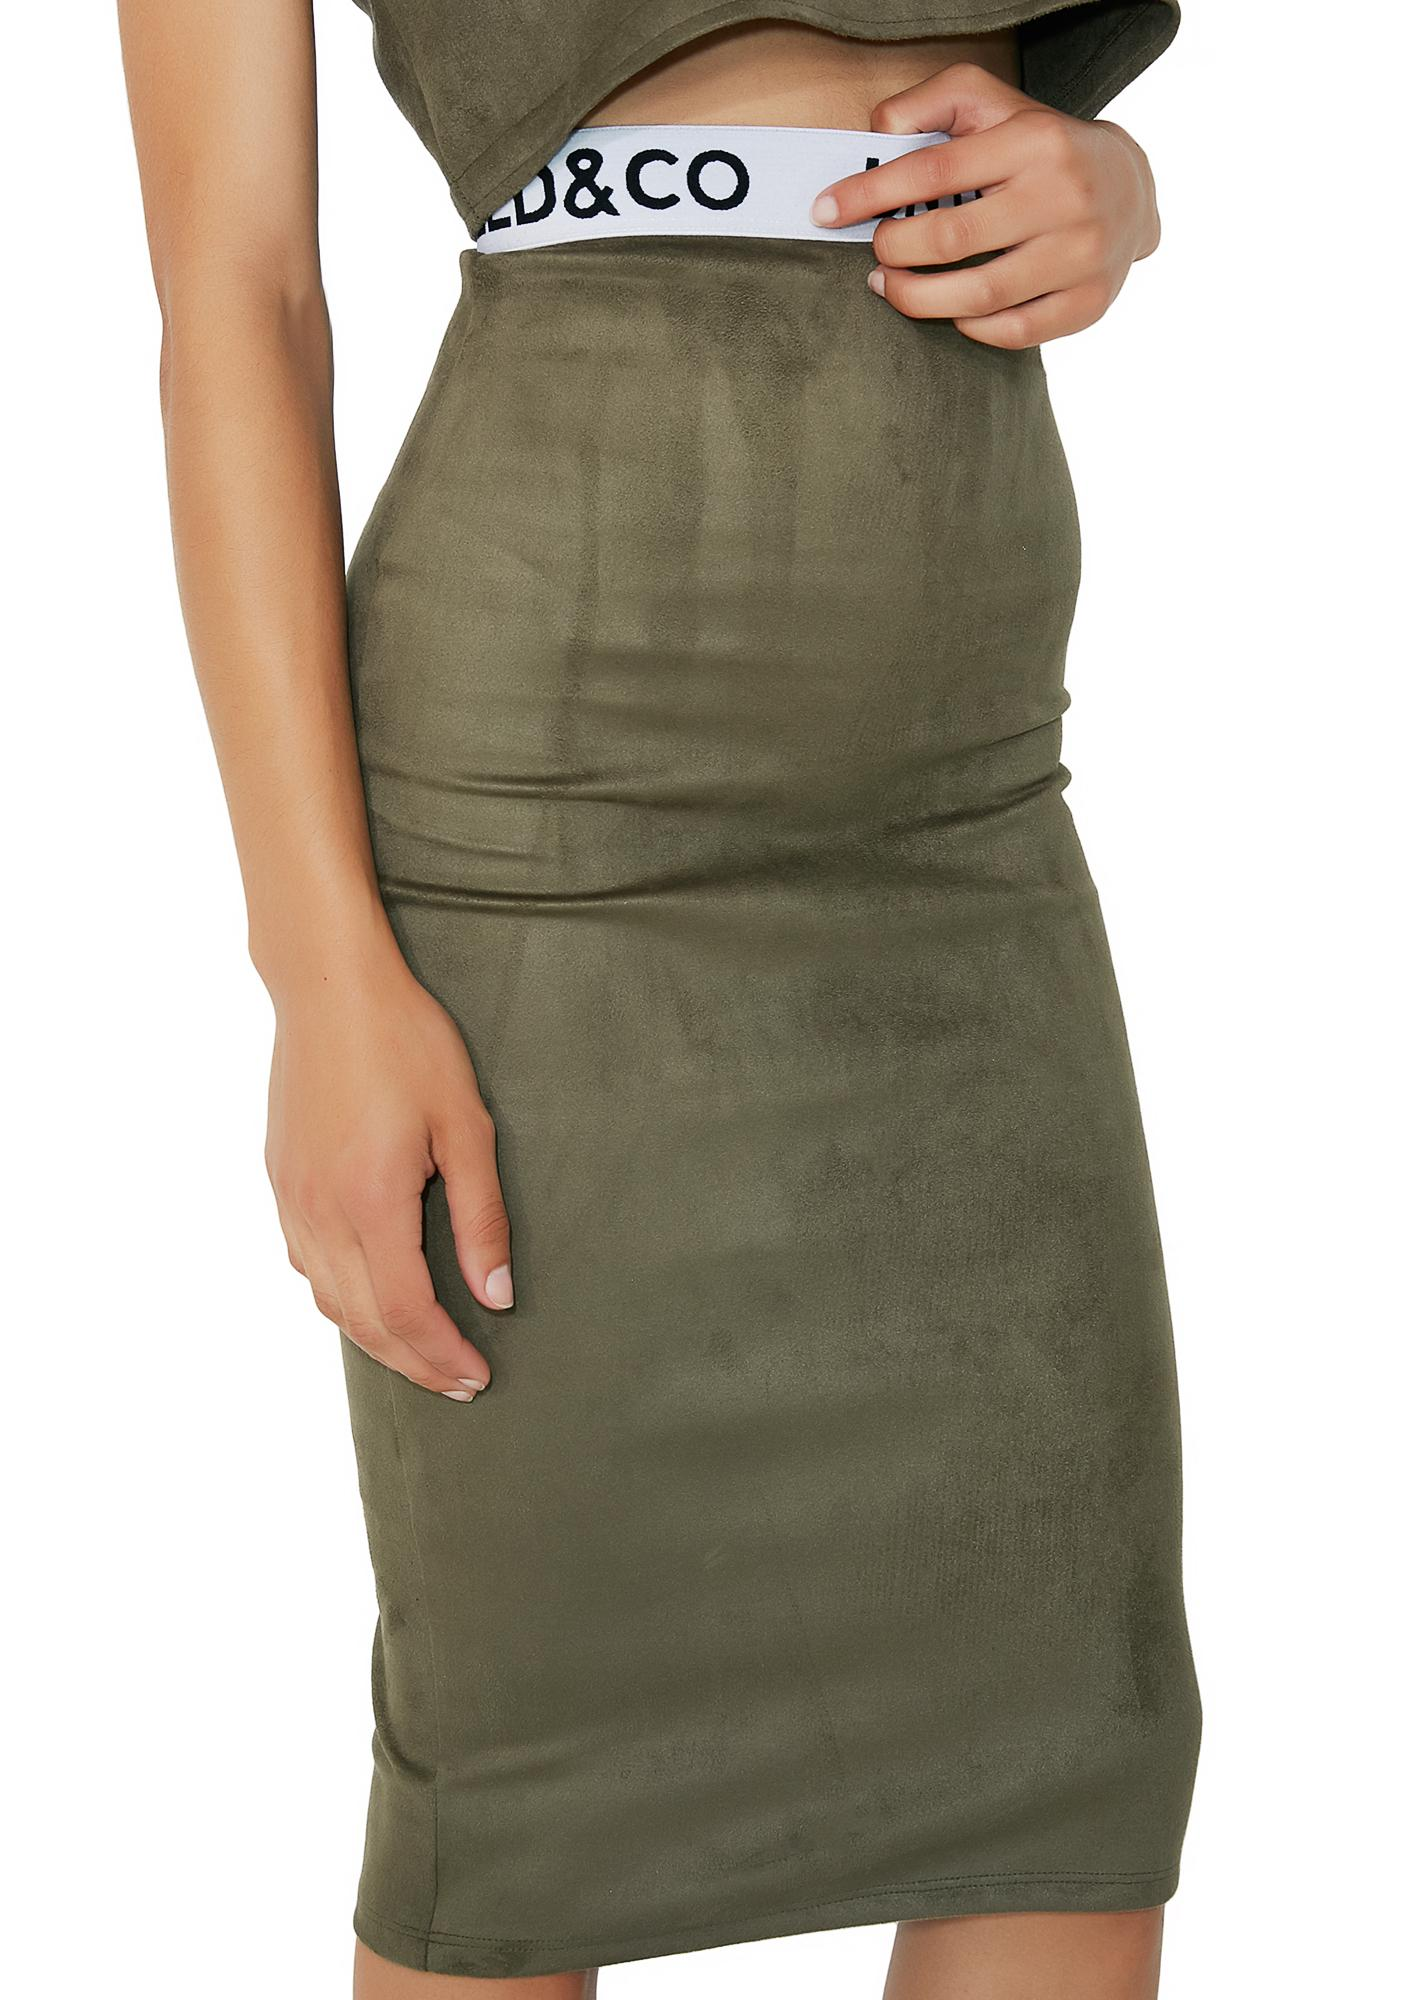 Untitled & Co Military Alex Skirt